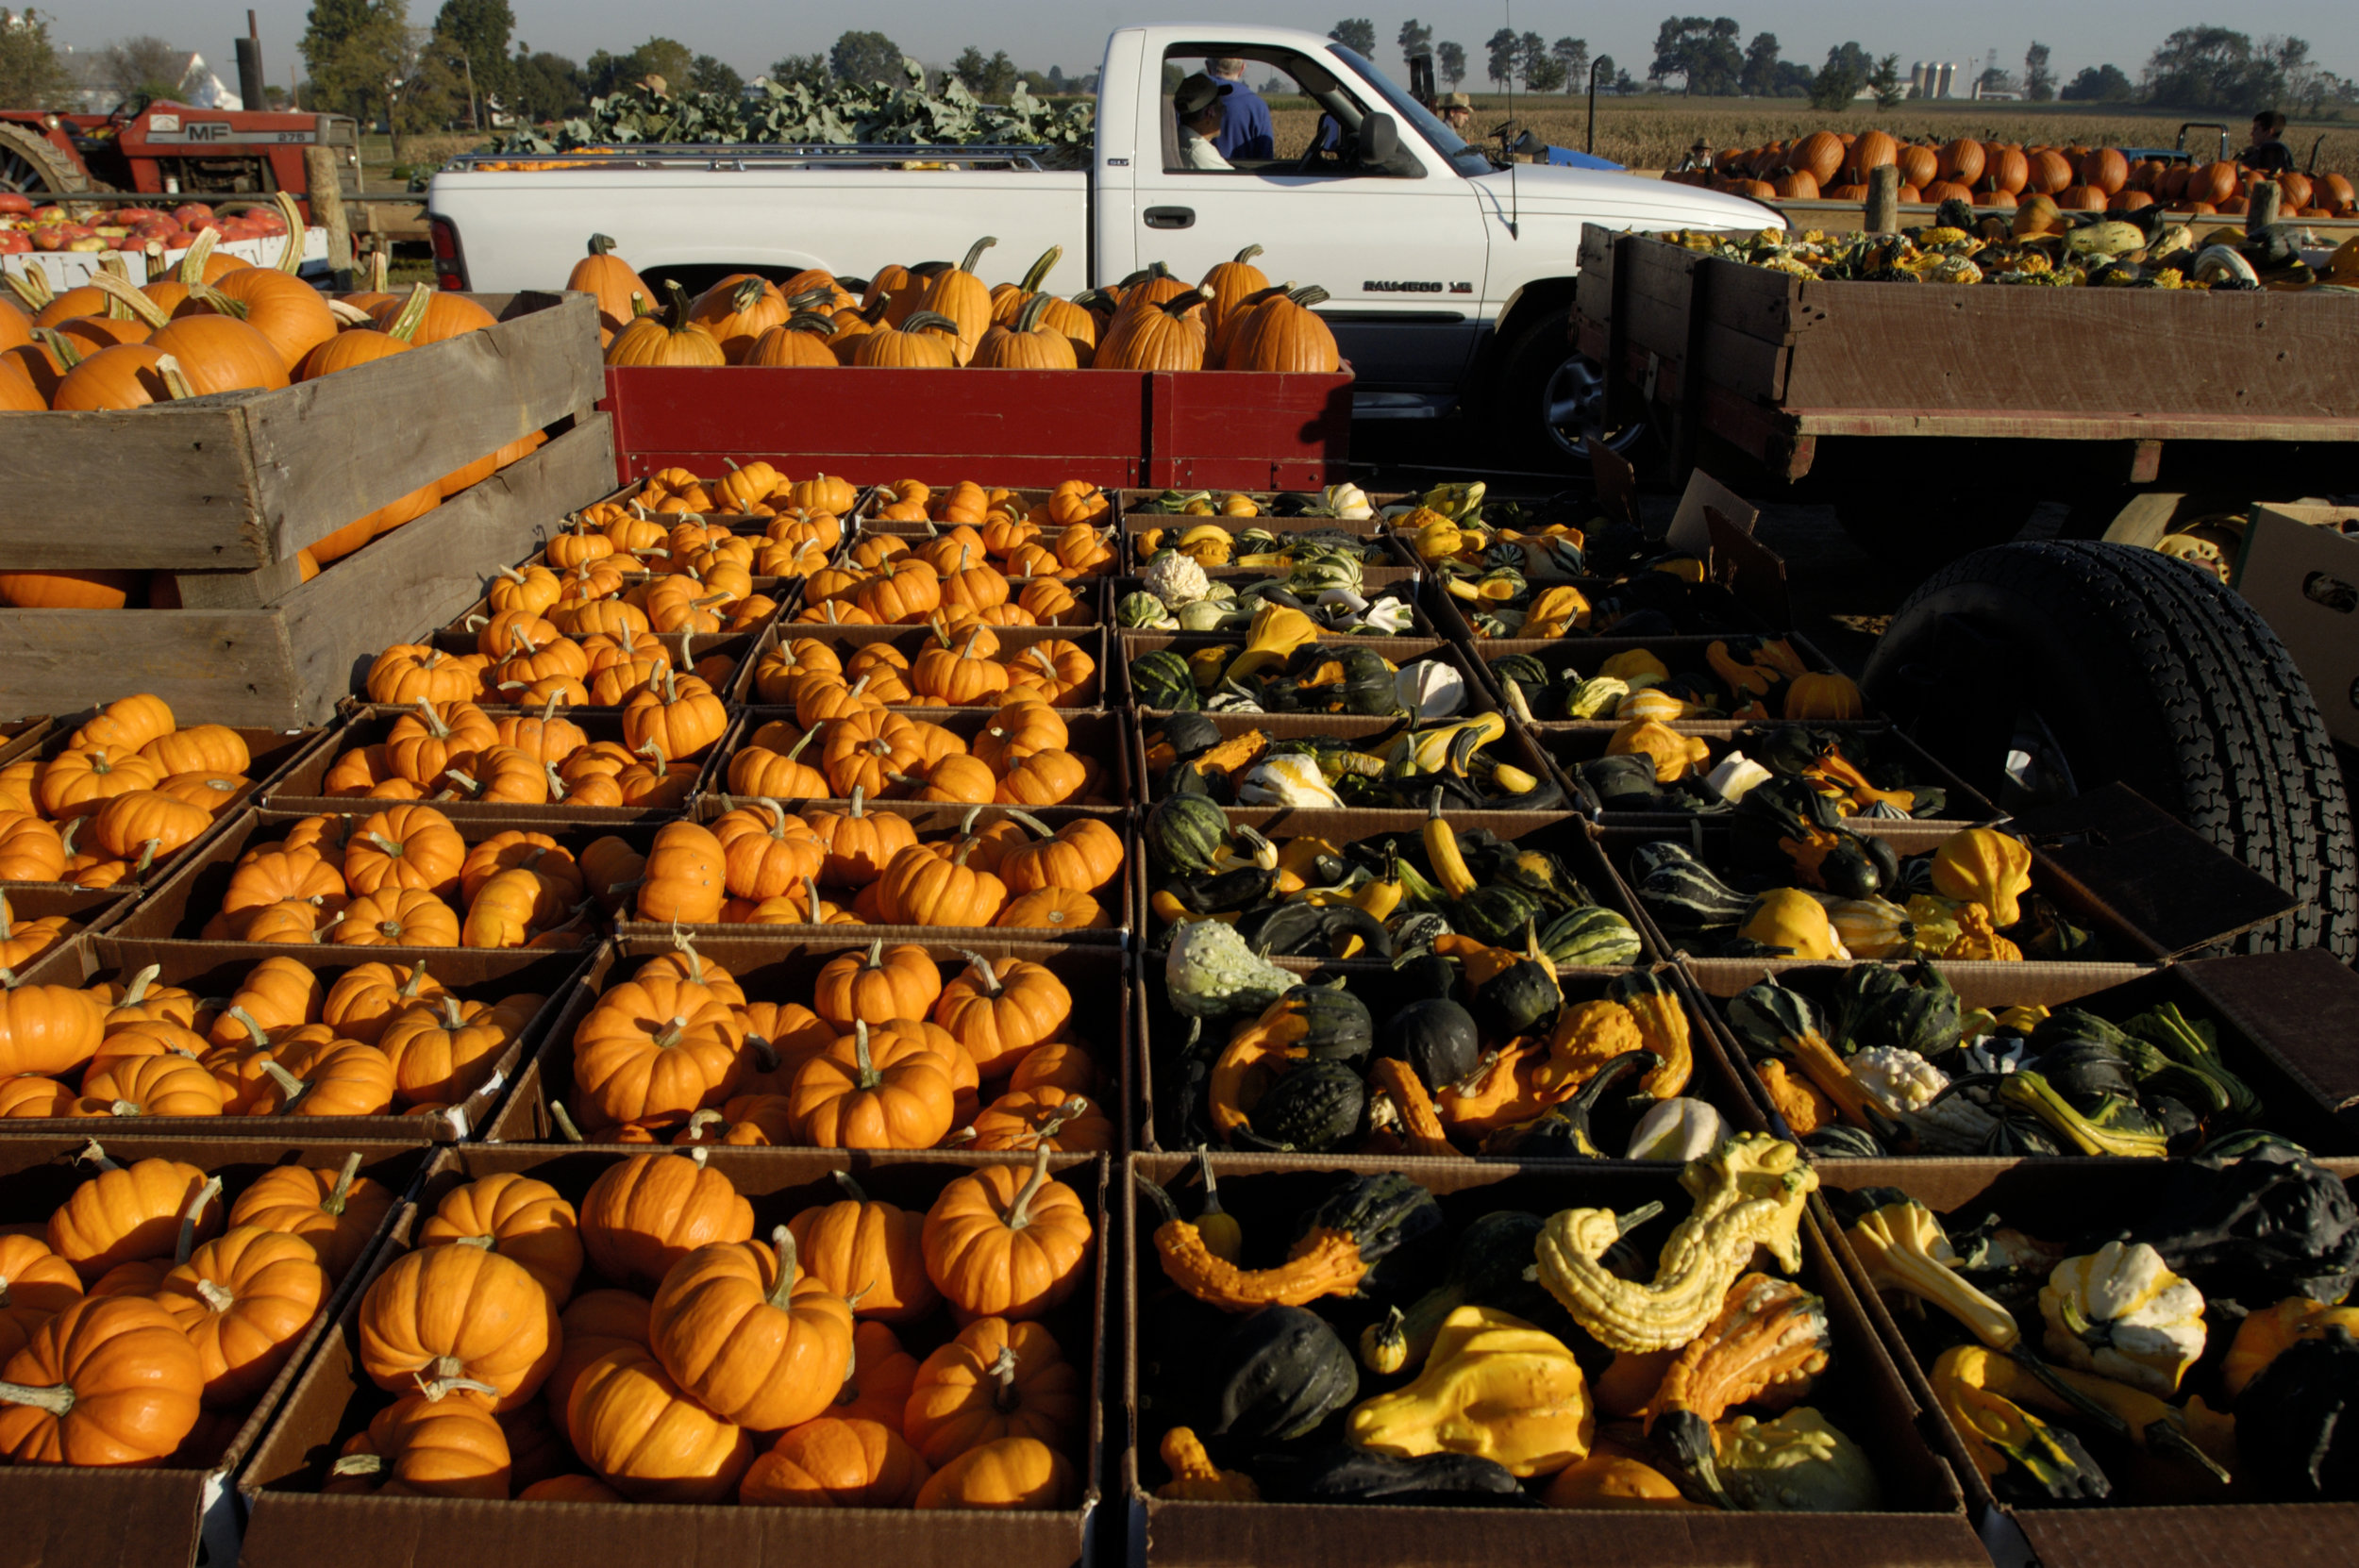 Photo by Edwin Remsberg. The image has rows of boxes filled with pumpkins and squash at a market.